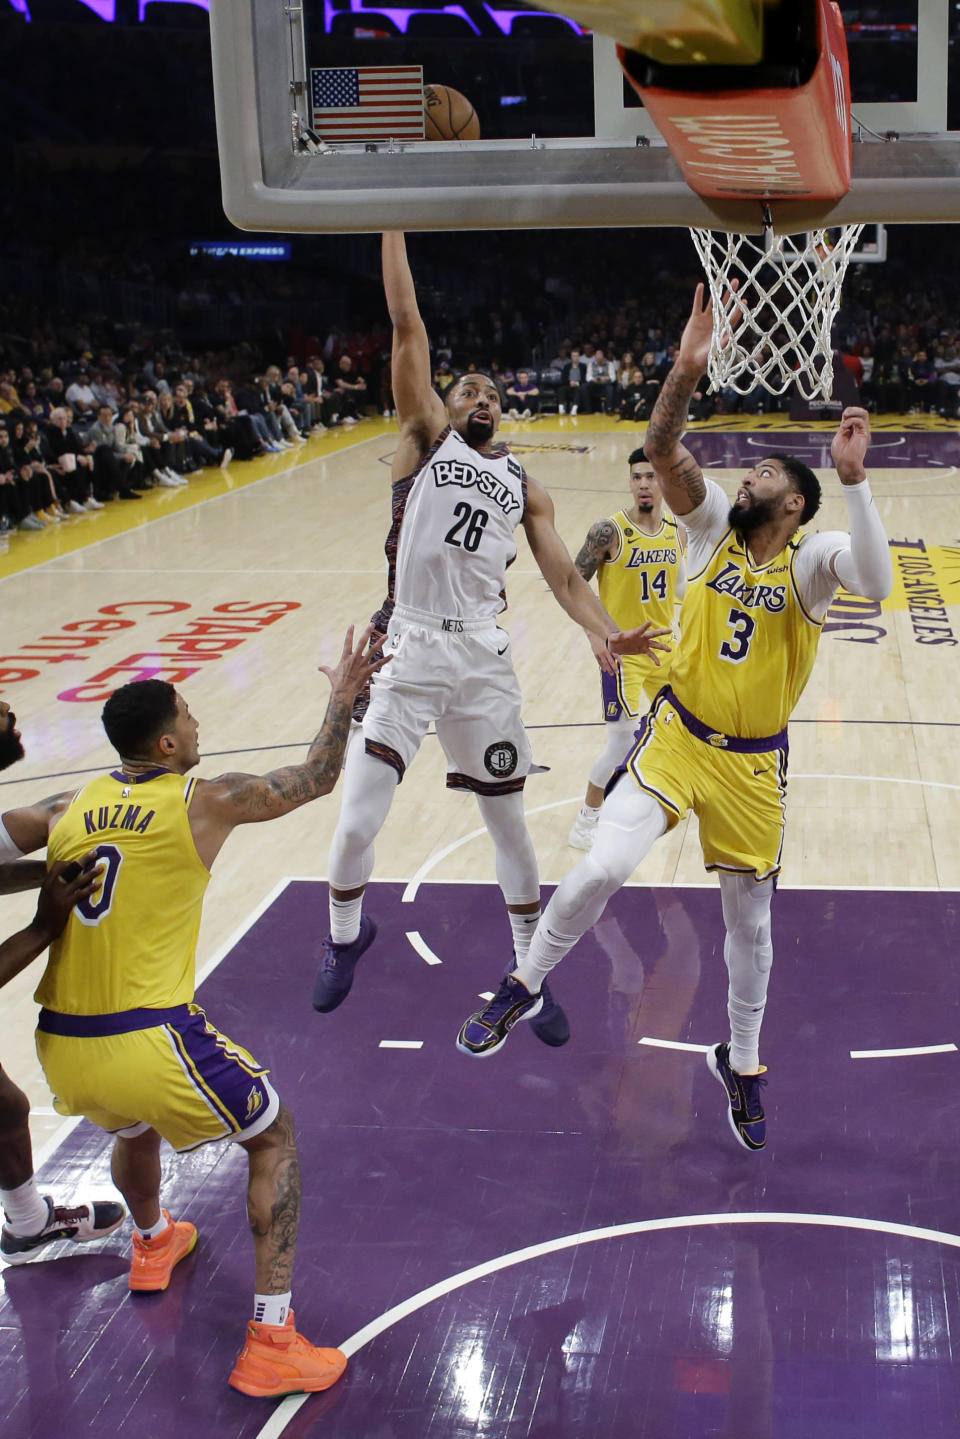 Brooklyn Nets' Spencer Dinwiddie (26) shoots over Los Angeles Lakers' Anthony Davis (3) during the first half of an NBA basketball game Tuesday, March 10, 2020, in Los Angeles. (AP Photo/Marcio Jose Sanchez)